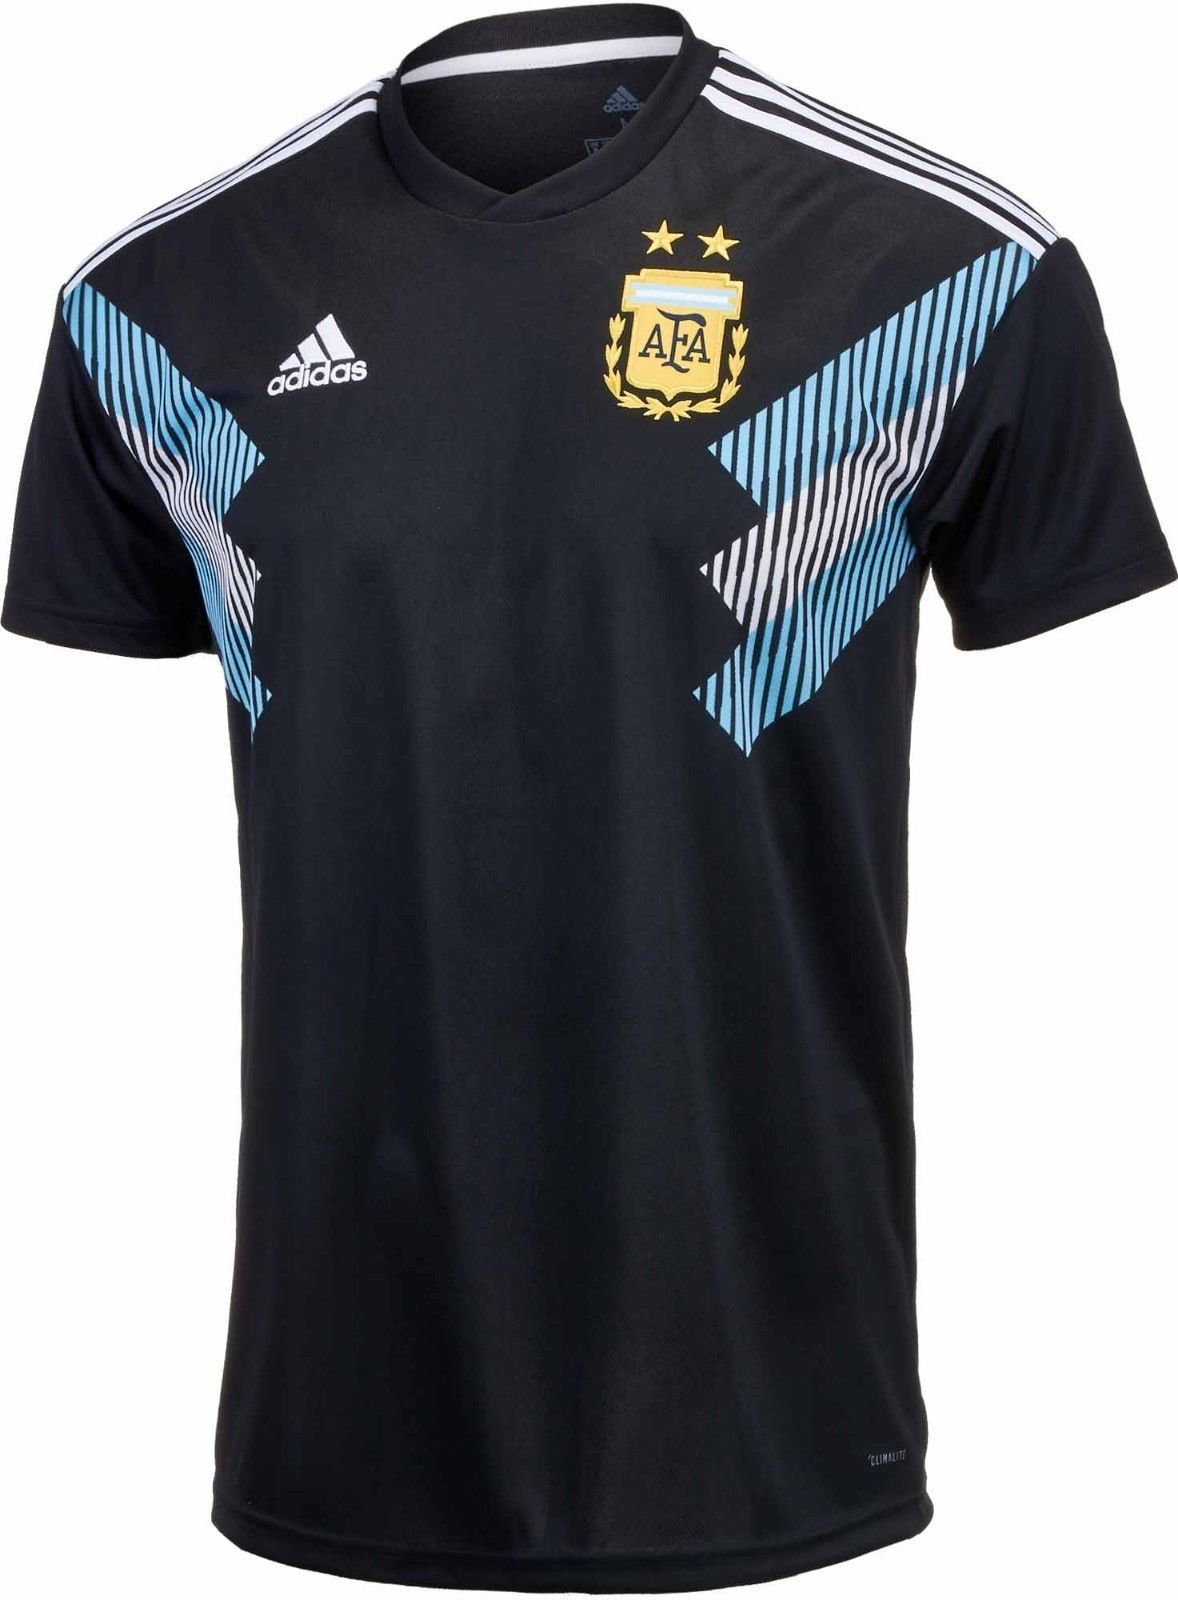 ac1163b32 adidas Argentina Official 2018 Away Soccer Football Jersey (eBay Link)